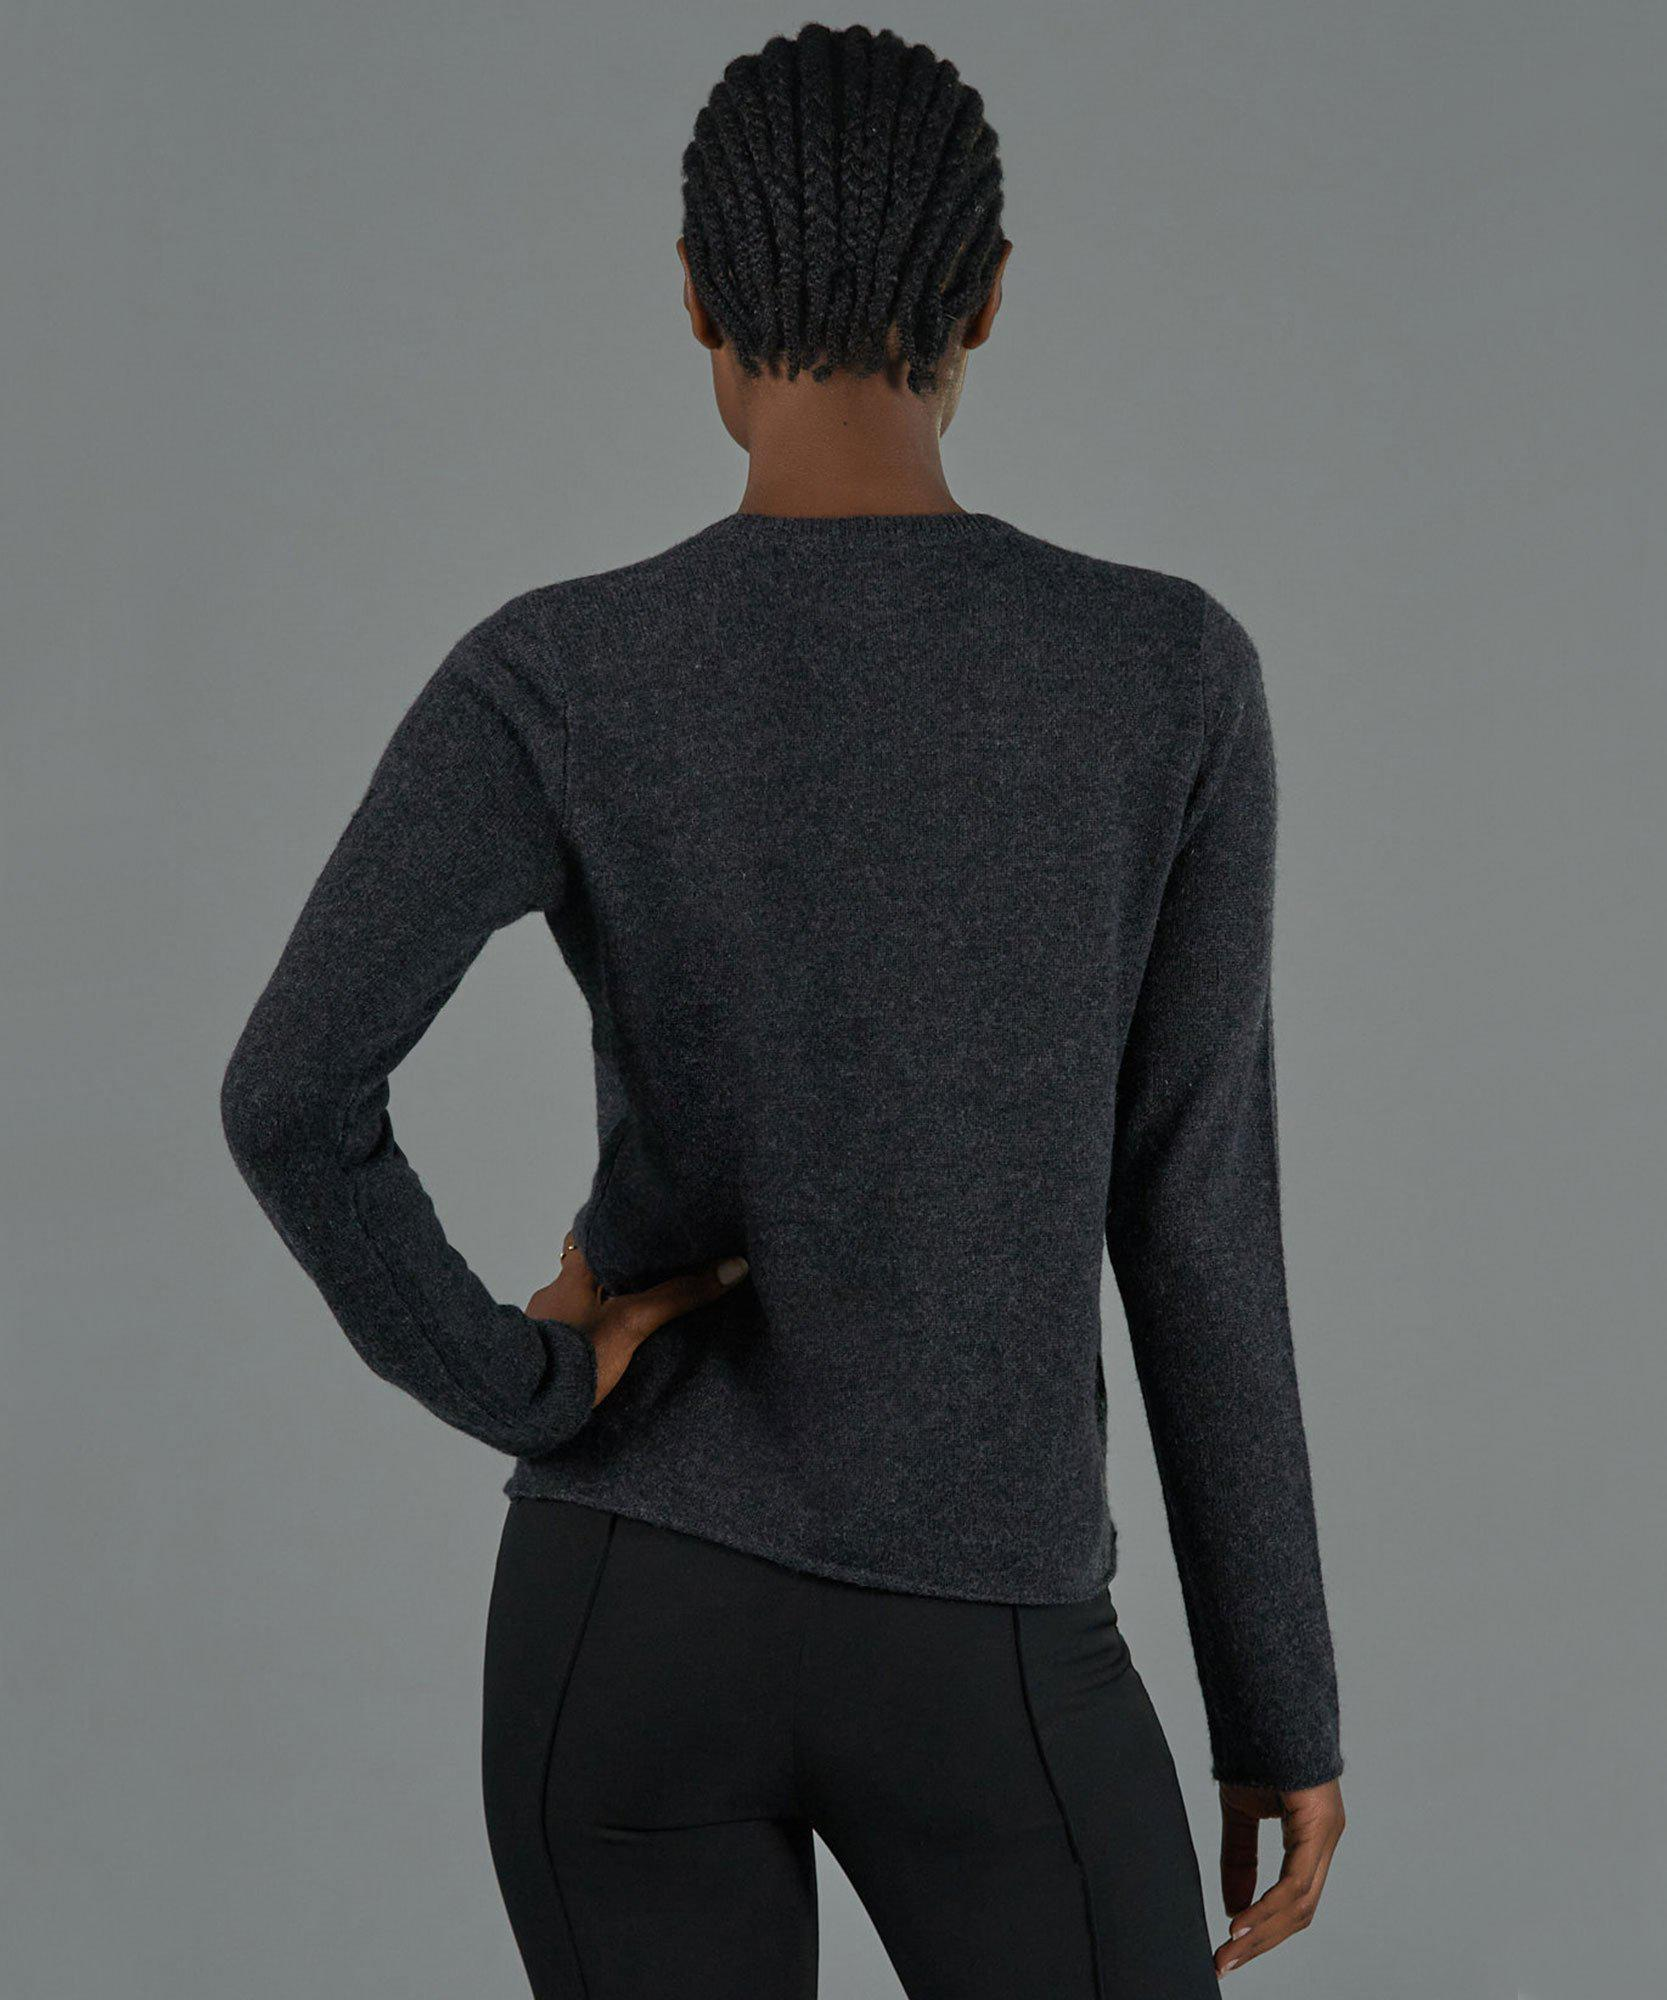 Cashmere Crew Neck Sweater - Charcoal 2